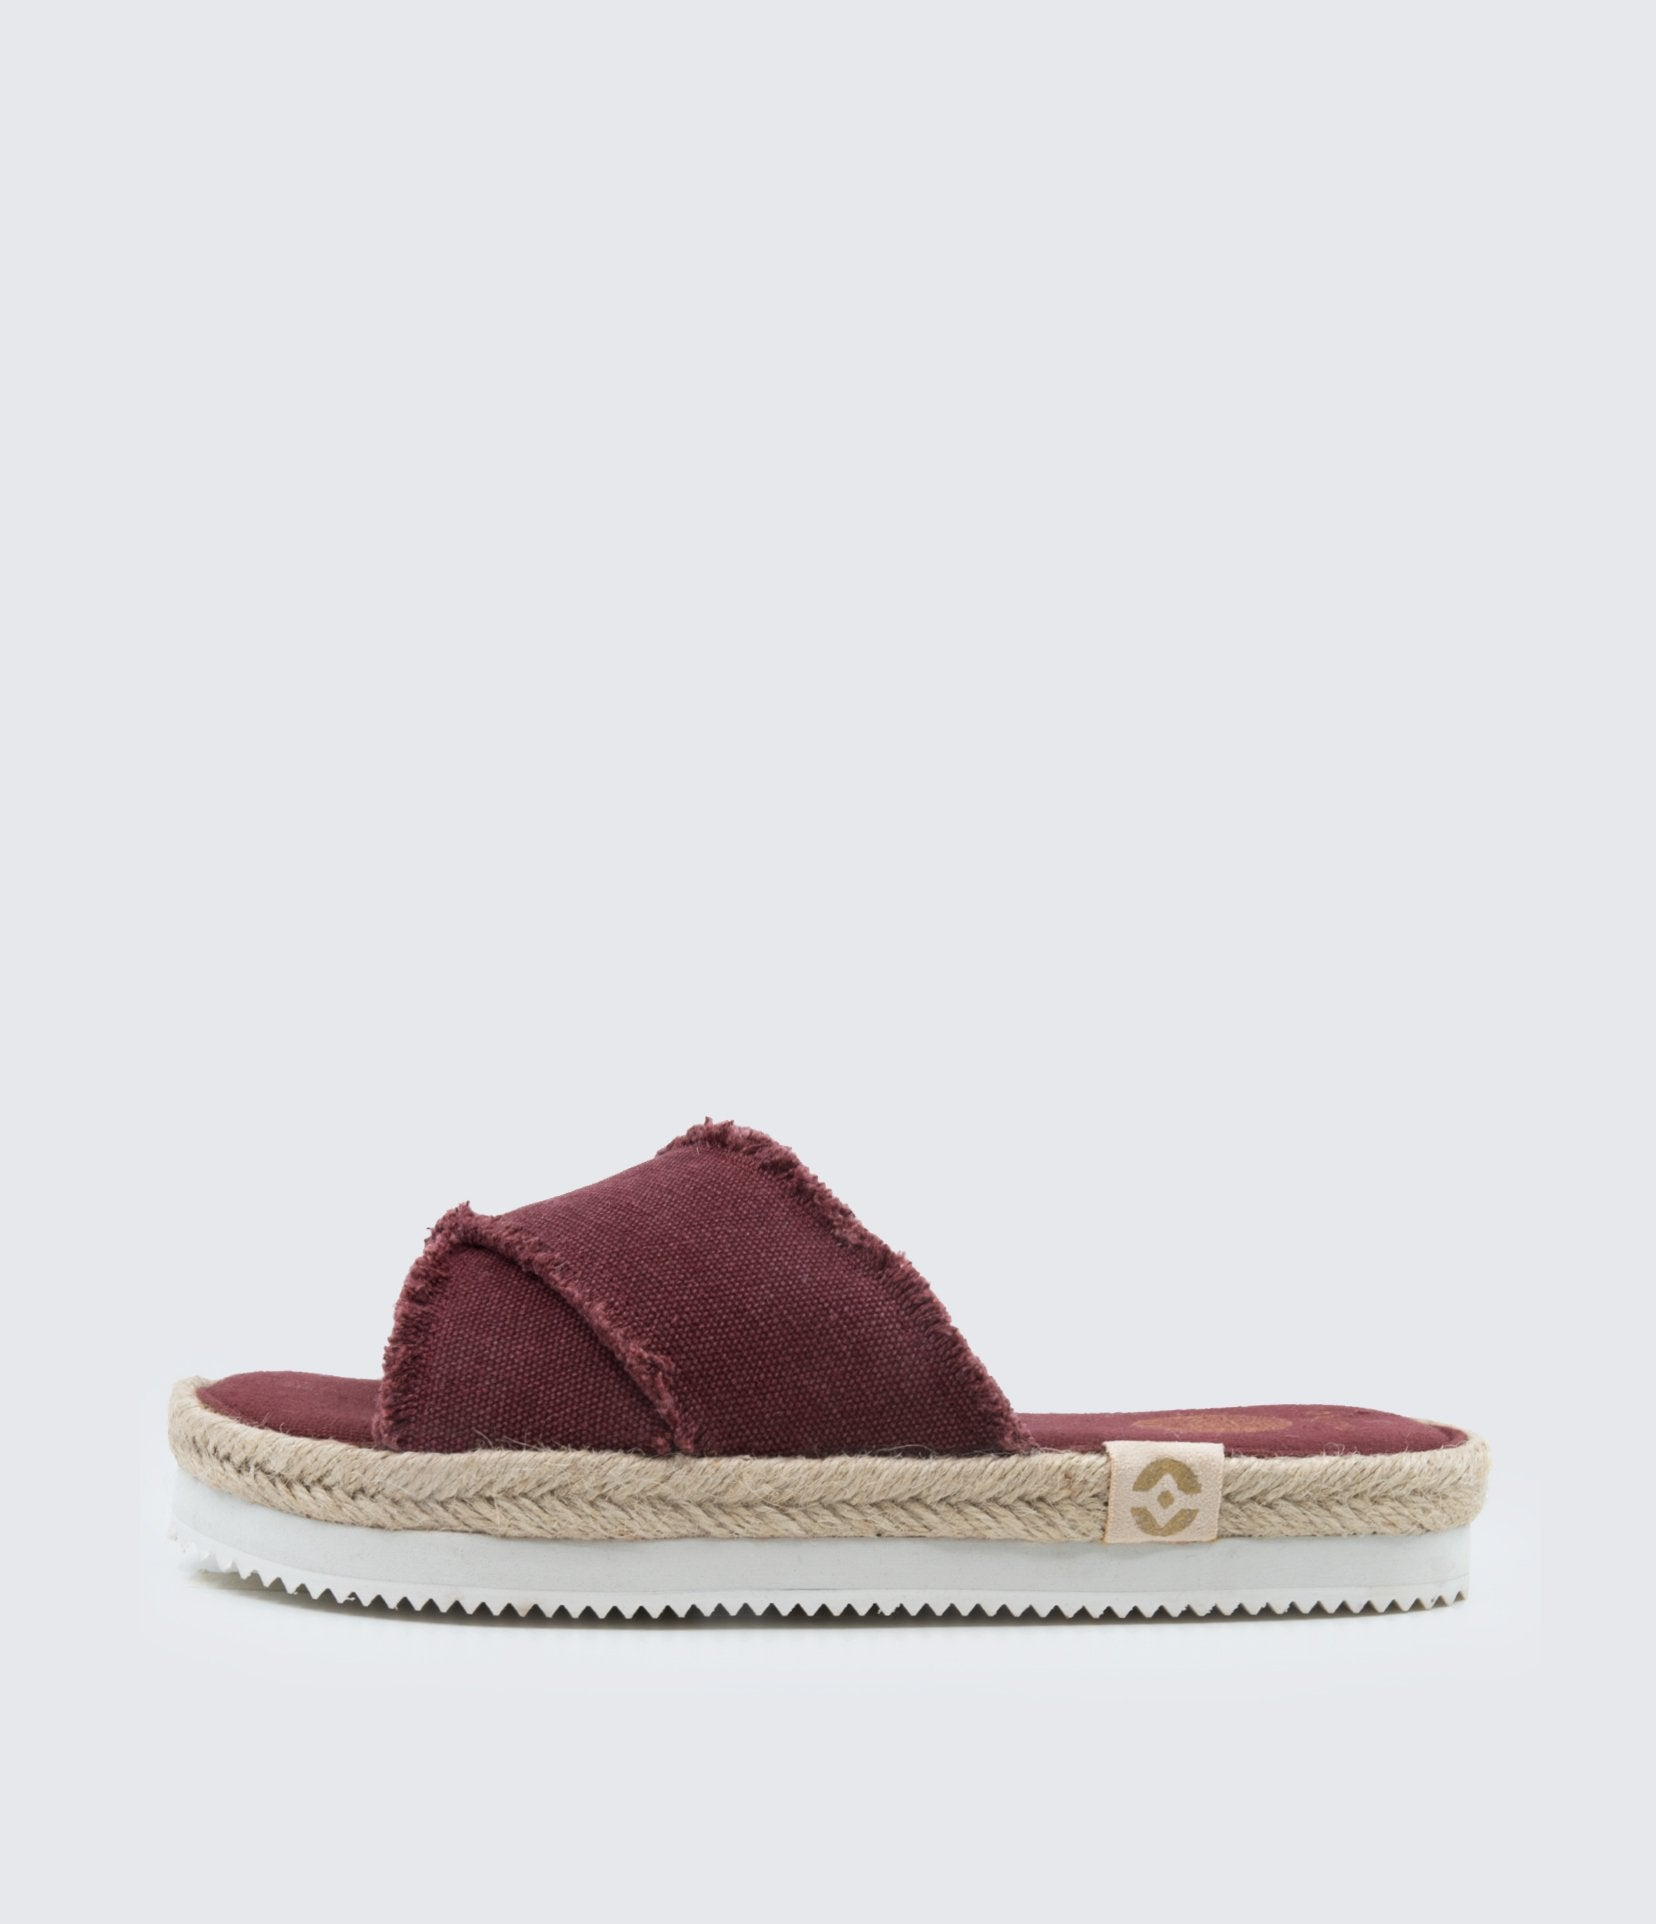 Kamala Purple Slip On Sandals - Monsoon Ridge